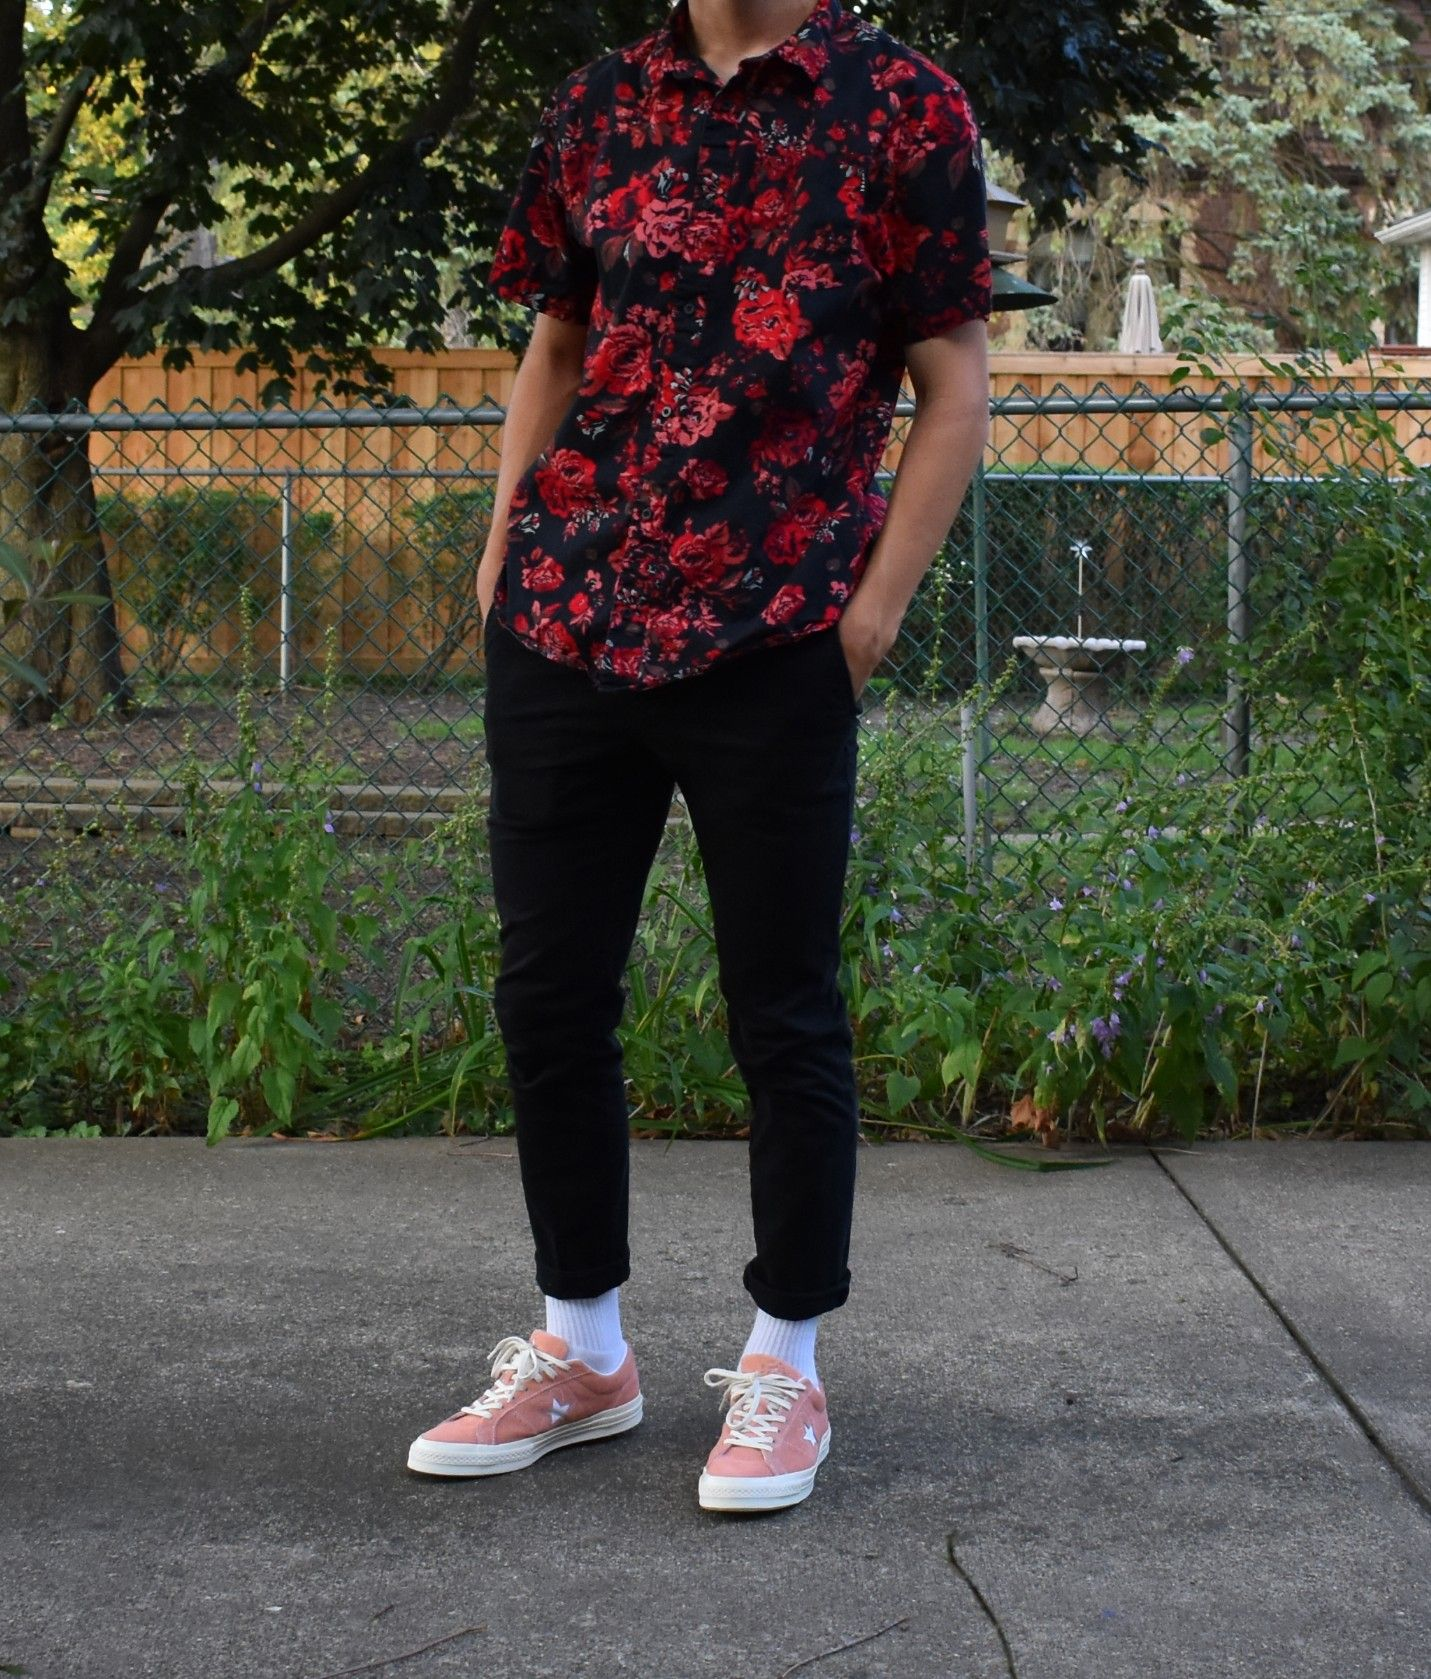 bf5477e630ef59  r streetwear Top Scoring Posts from August WDYWT Threads - Album on Imgur